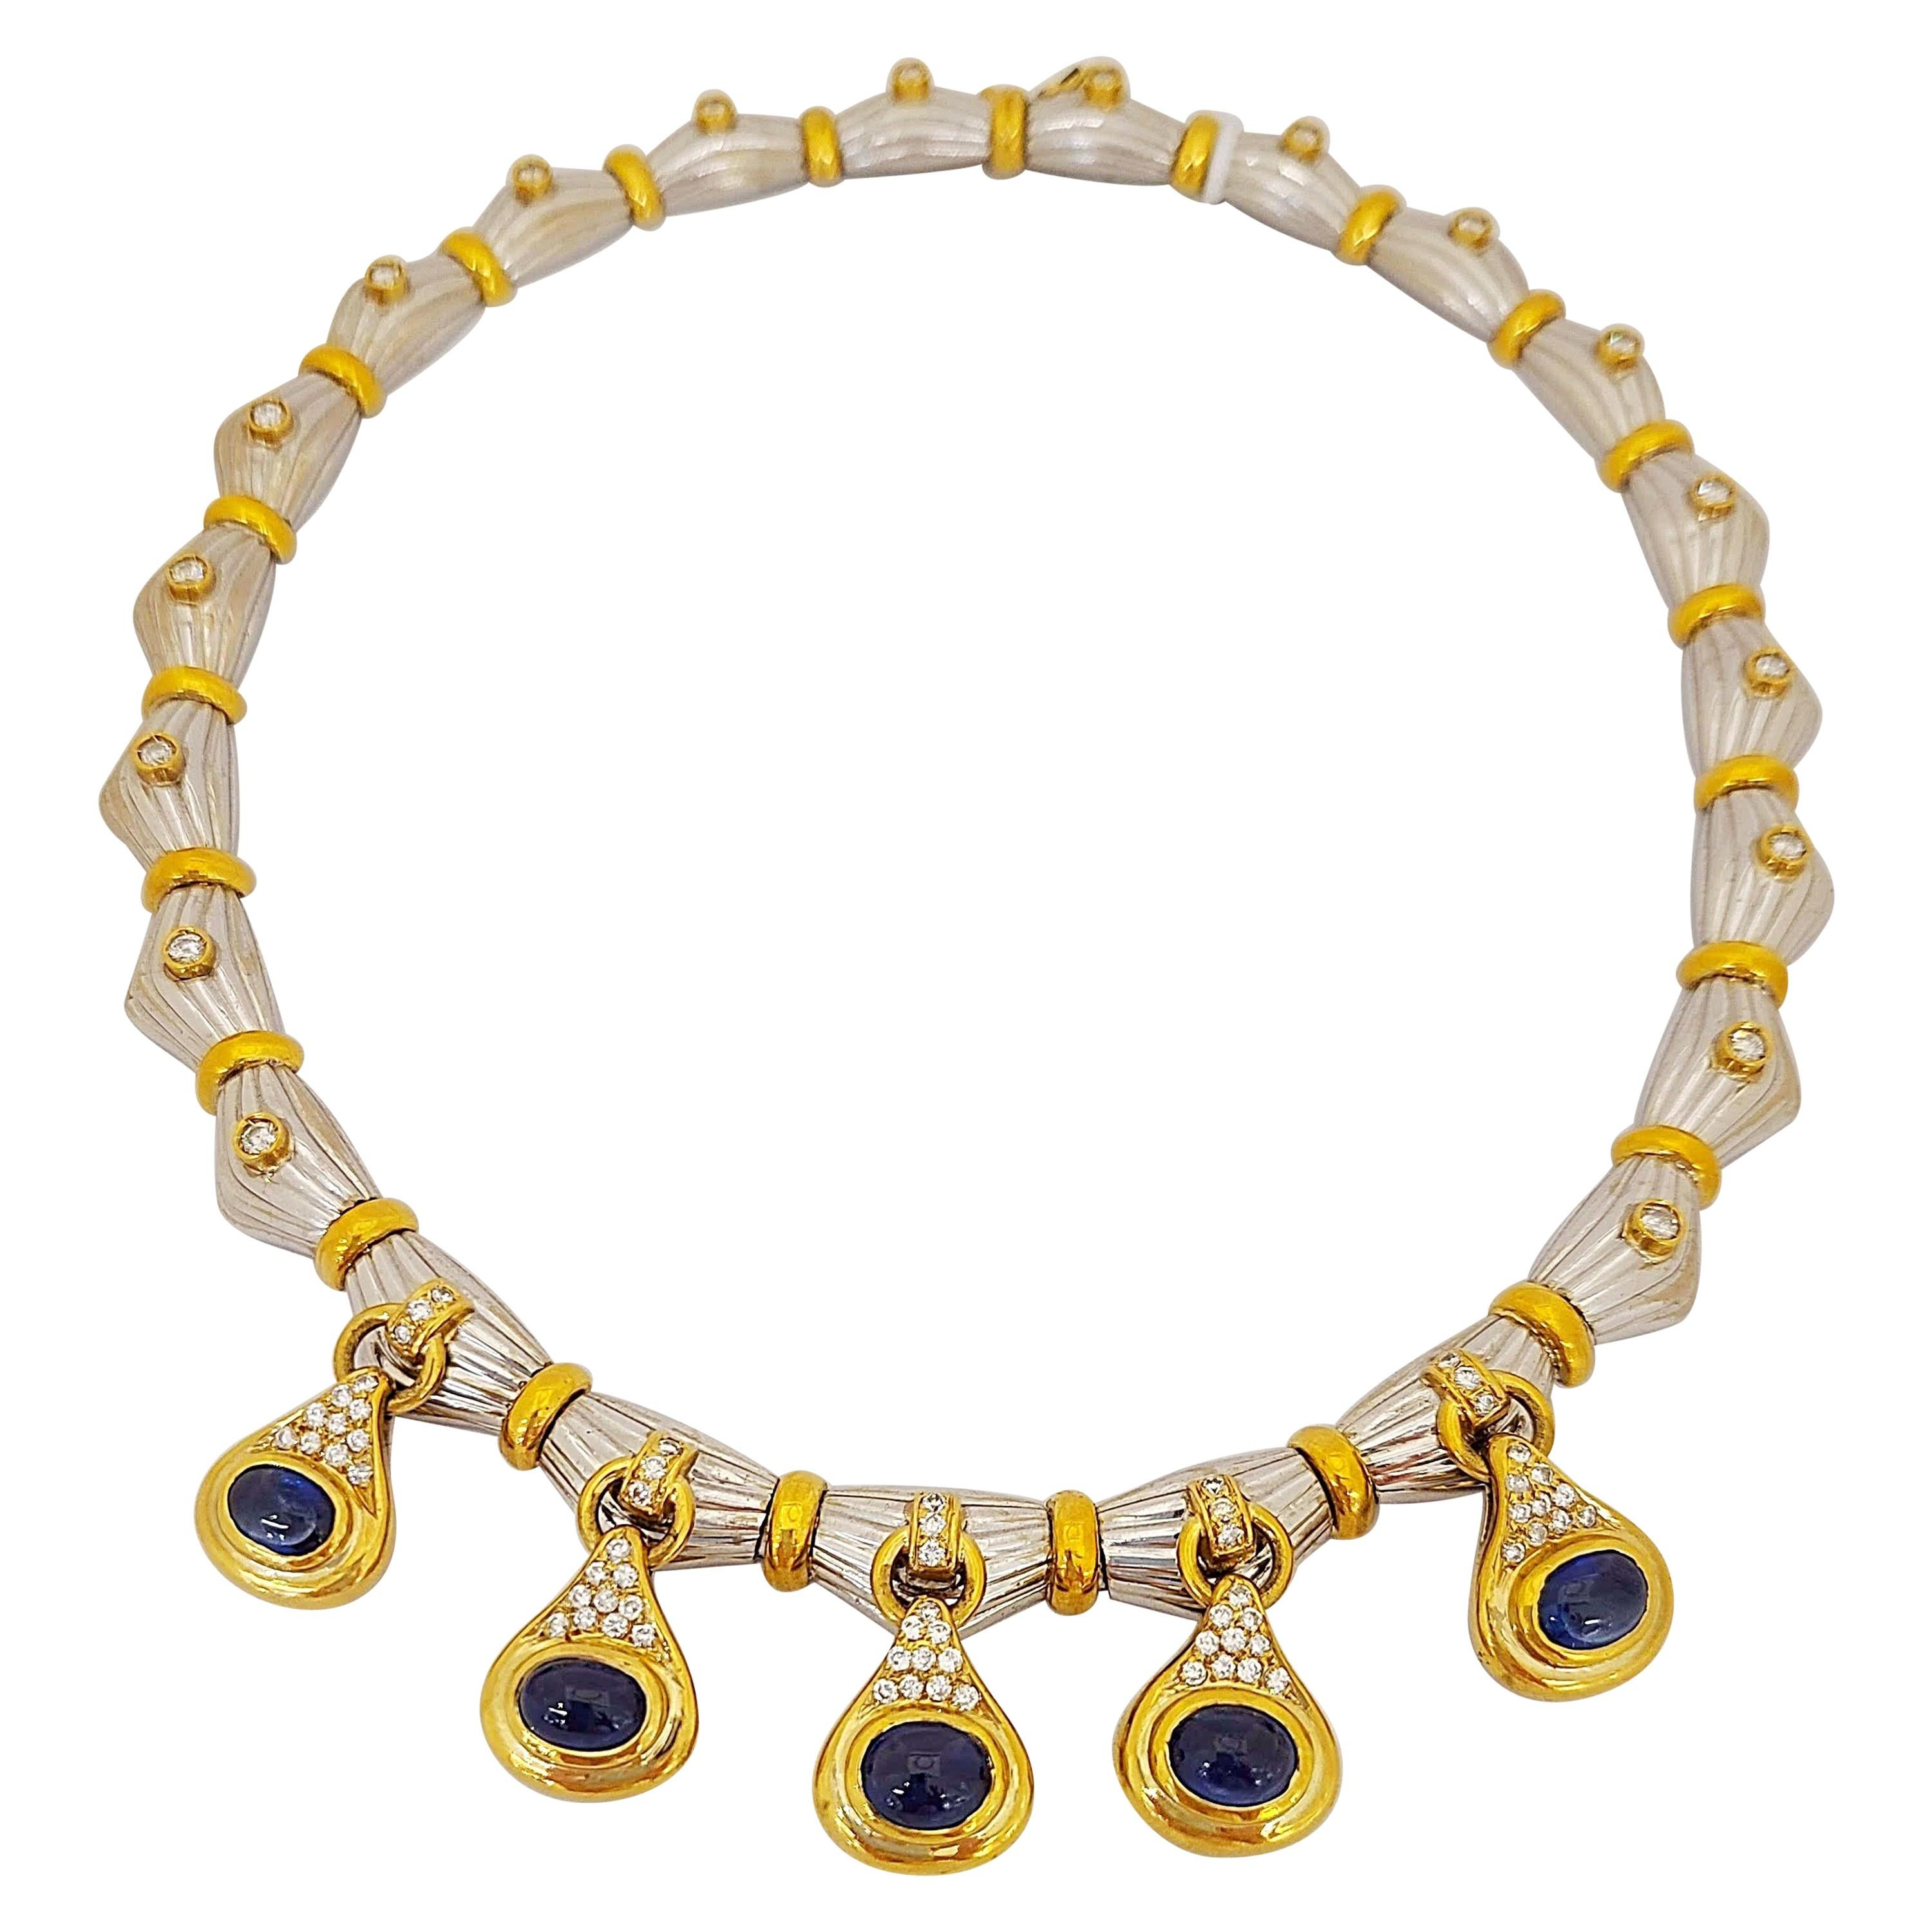 18KT Gold Necklace with 14.75Ct. Cabochon Blue Sapphires and 2.25 Carat Diamonds